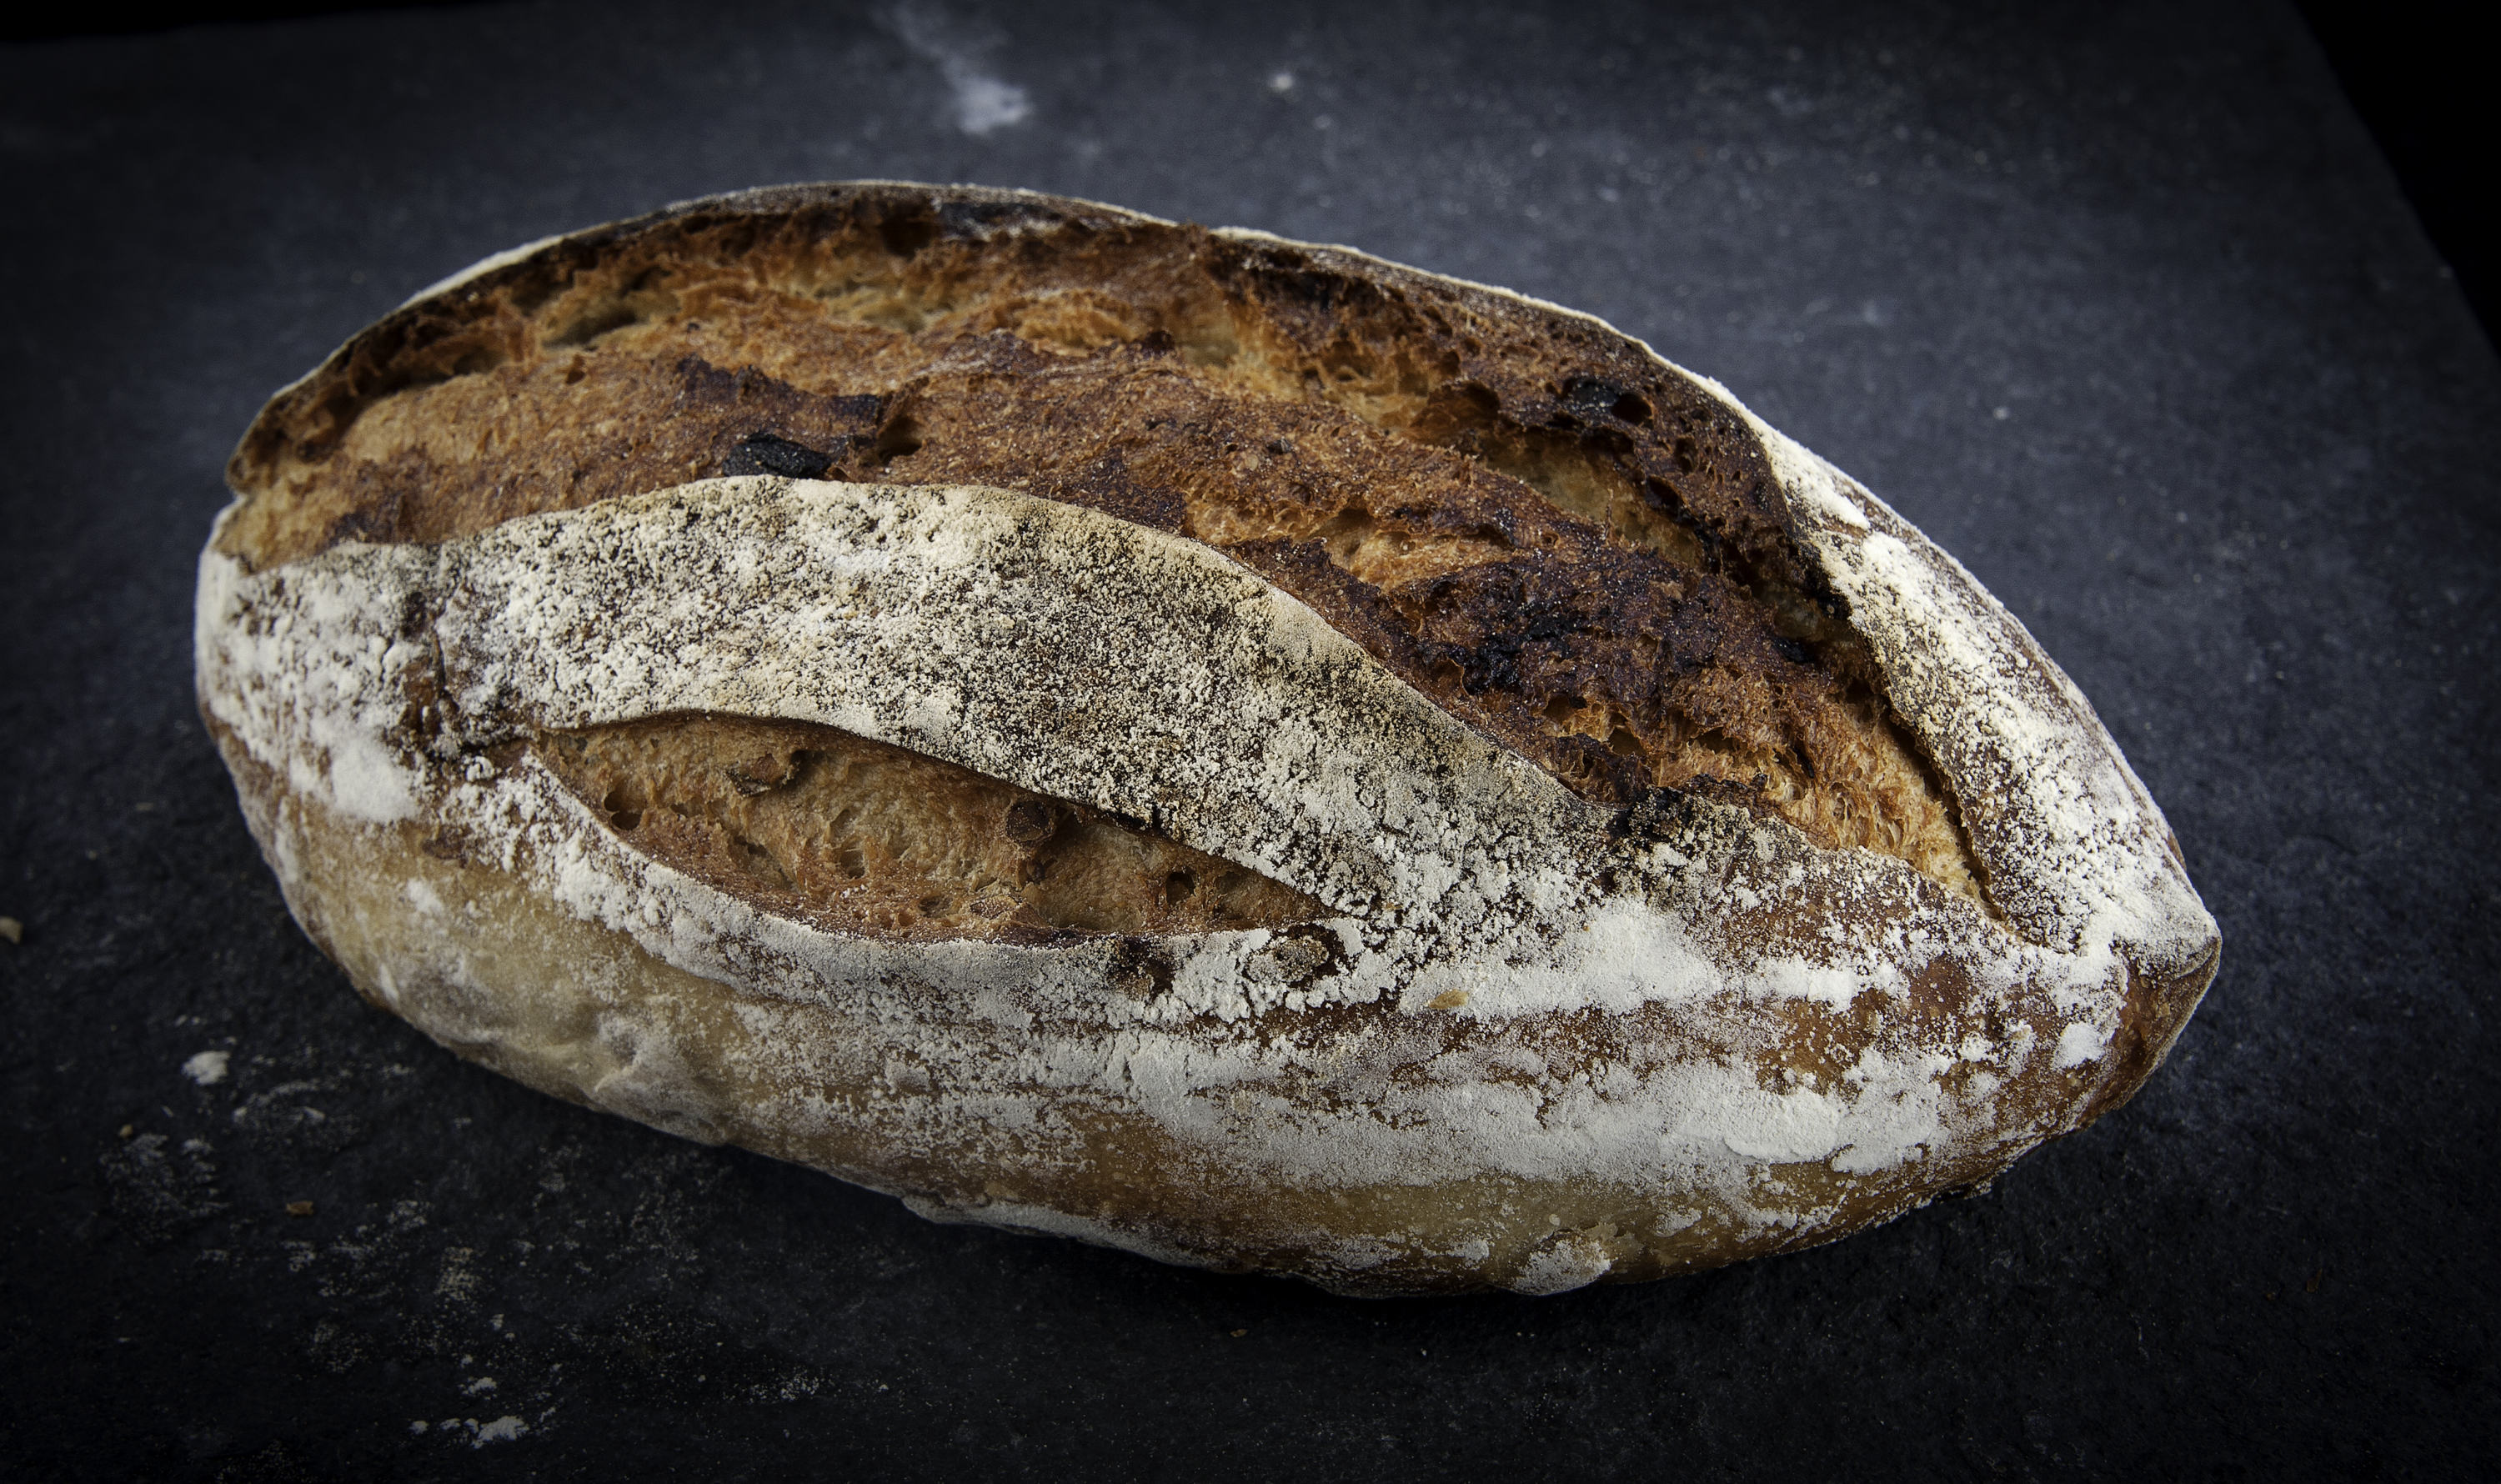 Food photography - bread